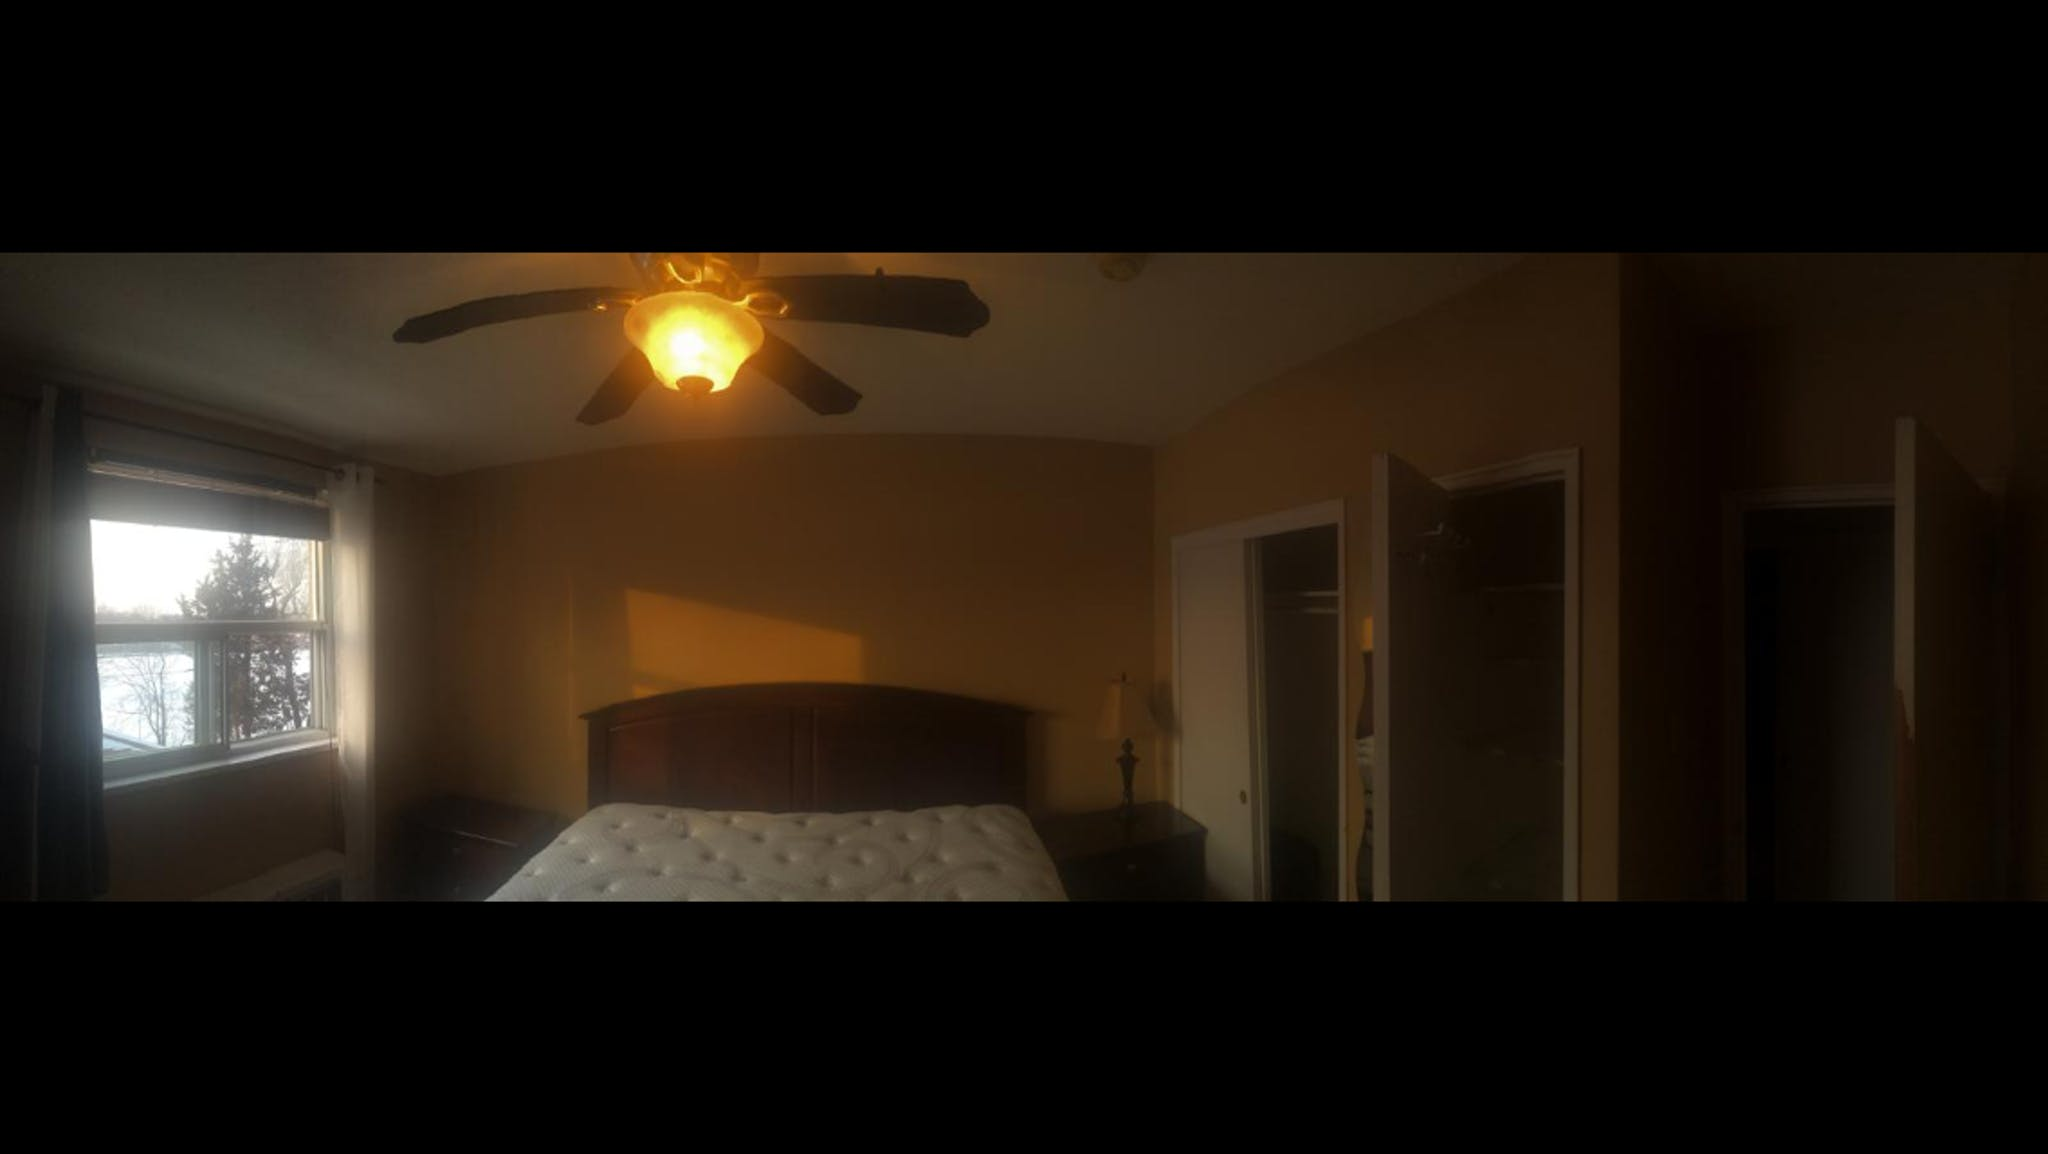 Holiday apartment Toronto, Torbolton Dr, Holiday apartment for rent